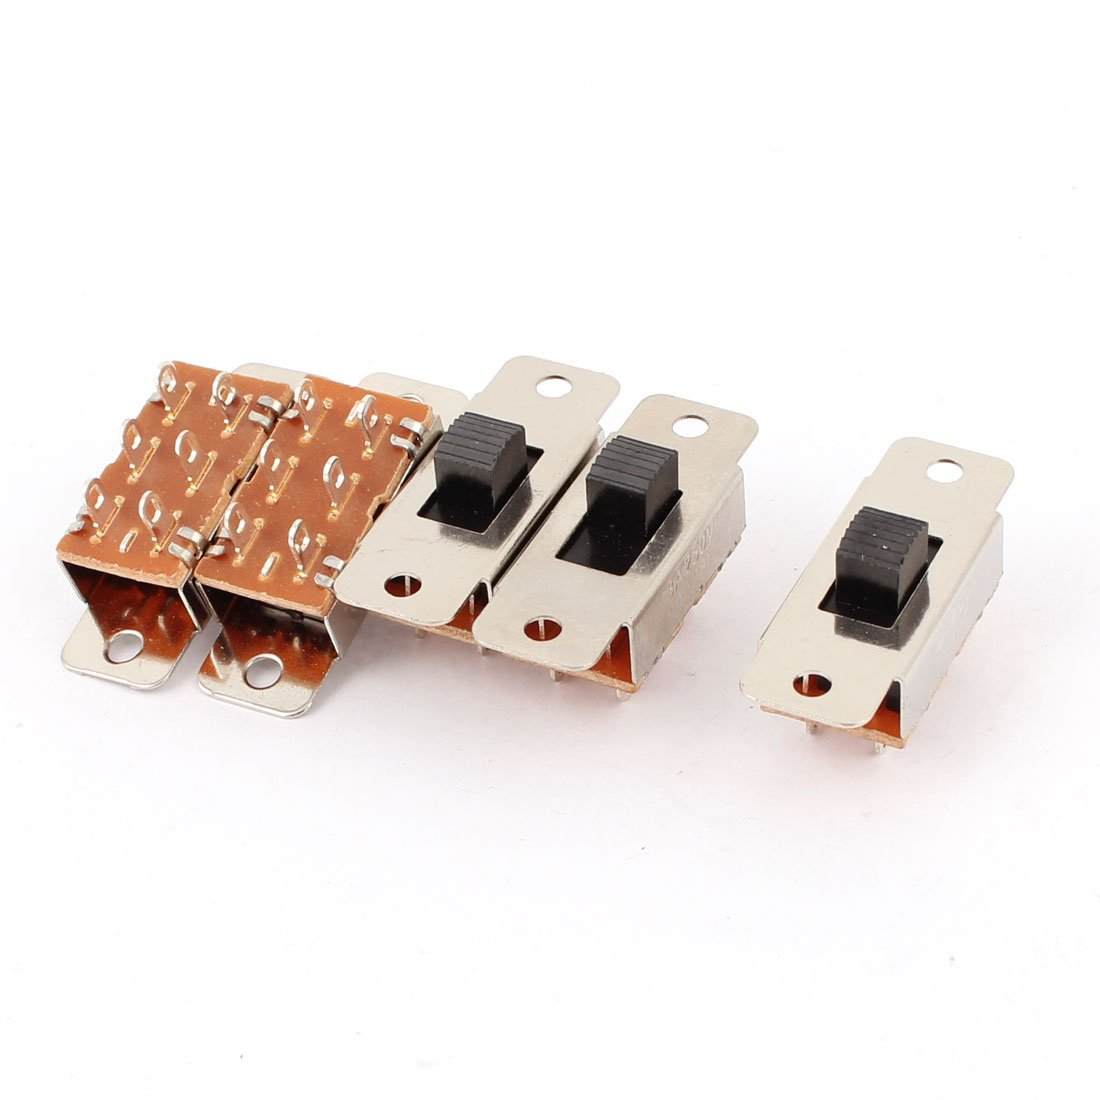 5pcs Pcb Diy Dpdt 3 Position Mini Slide Switch Ac 250v 3a 125v 6a Lot Push Button Off On 1 Circuit Non Locking Tools